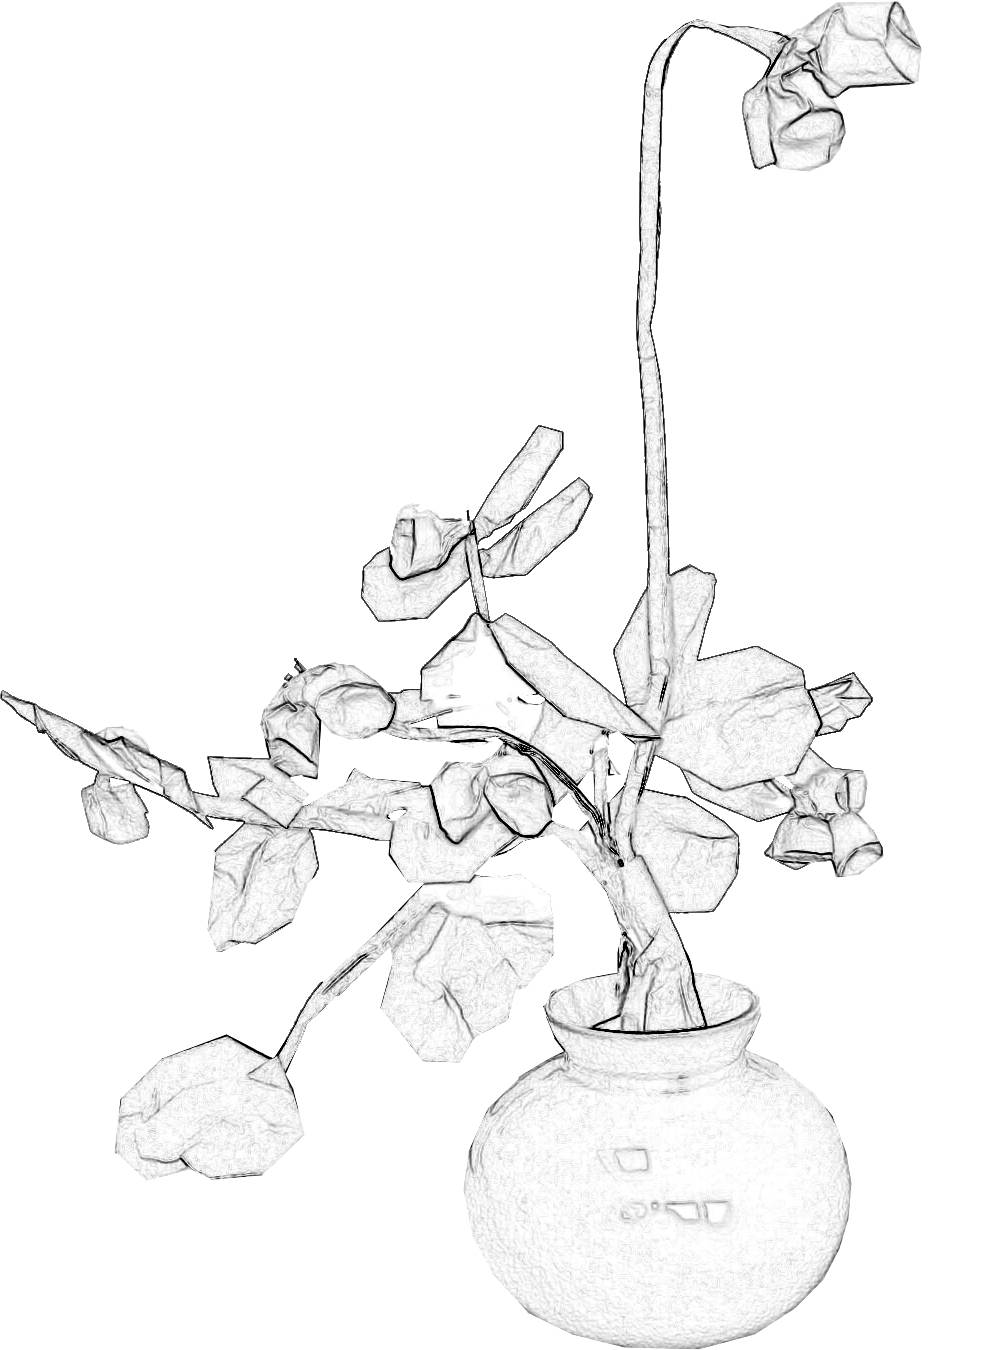 Colouringpicture of a Bonsai Origami Bell Flower